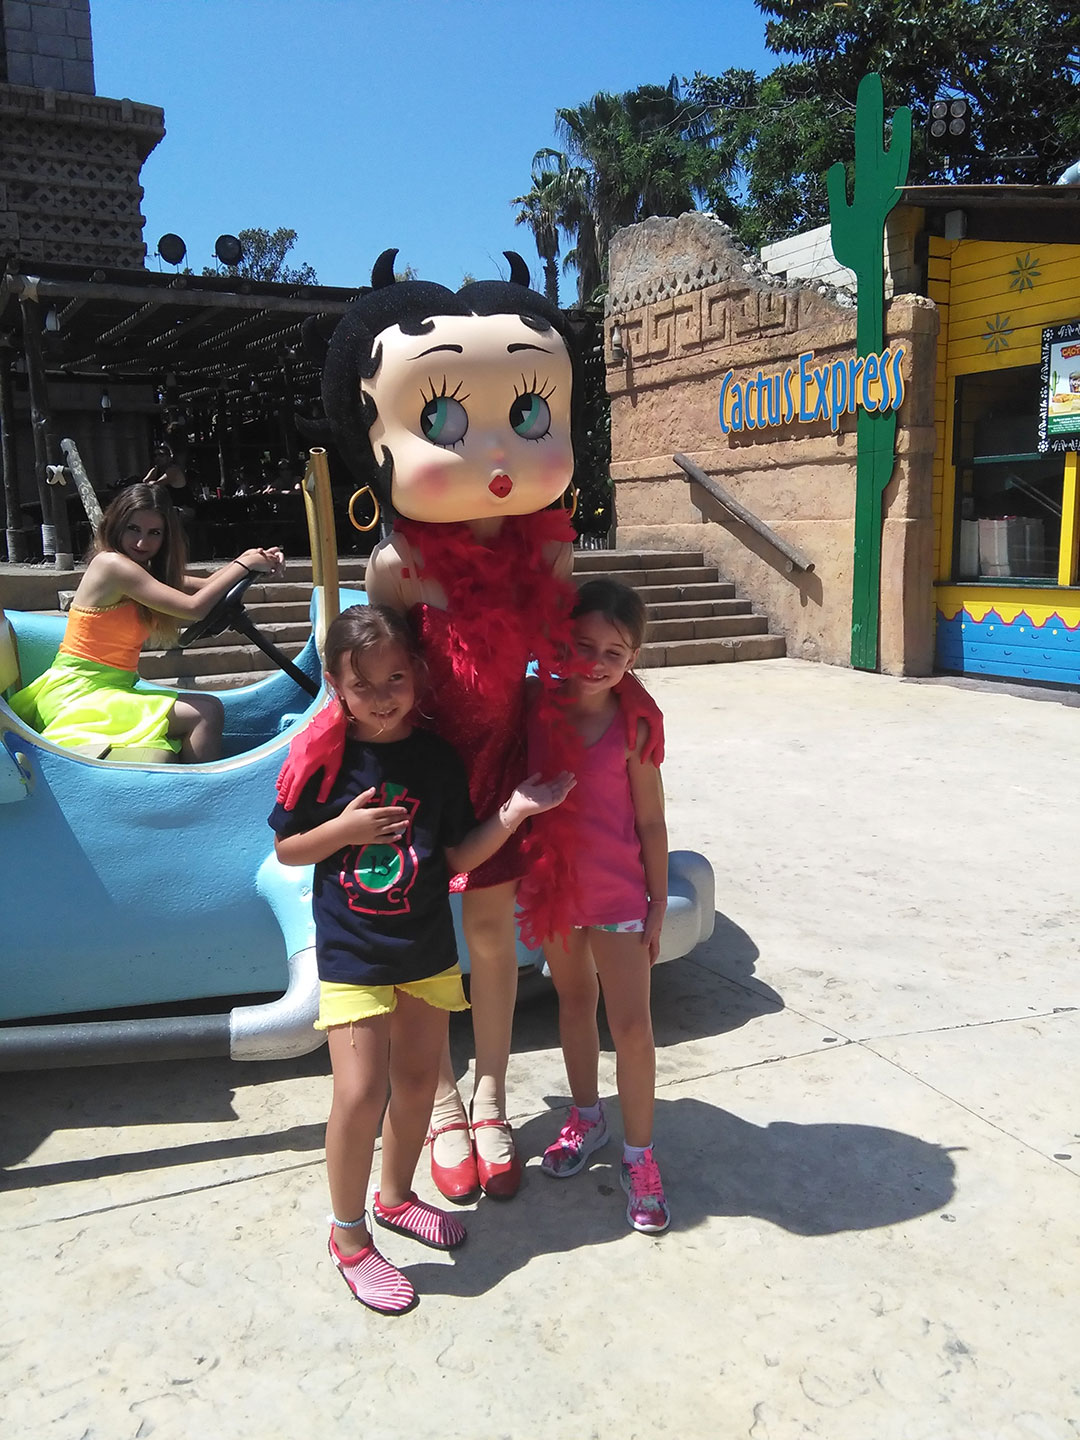 160702-portaventura-sequiol-2-123611